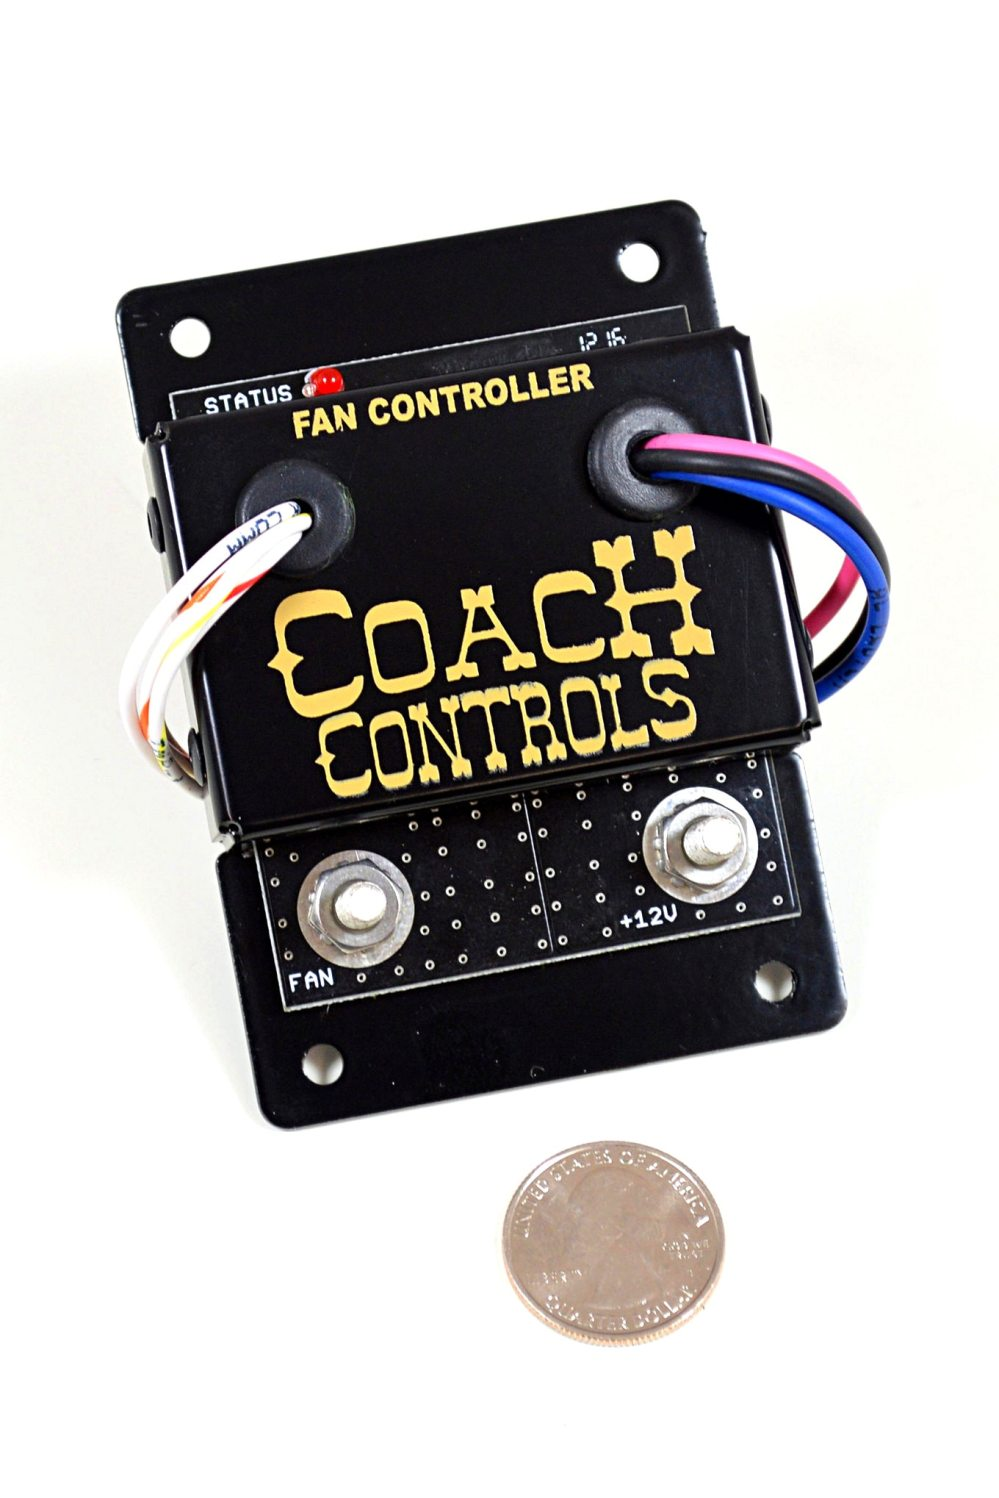 medium resolution of all coach control wiring kits include 100 amp surge resistant fuses to protect